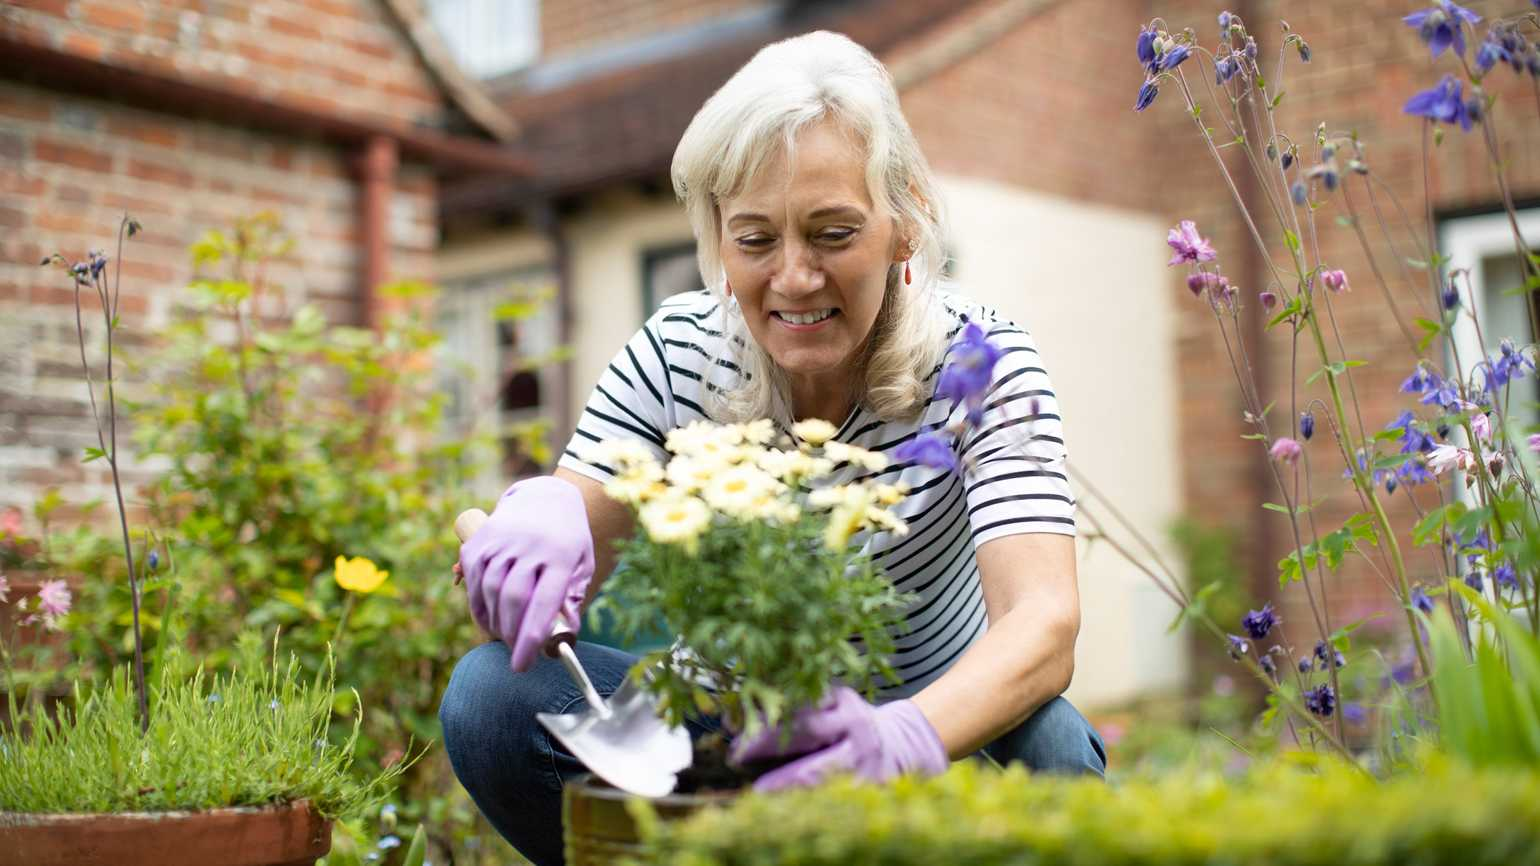 A woman gardening flowers outside.